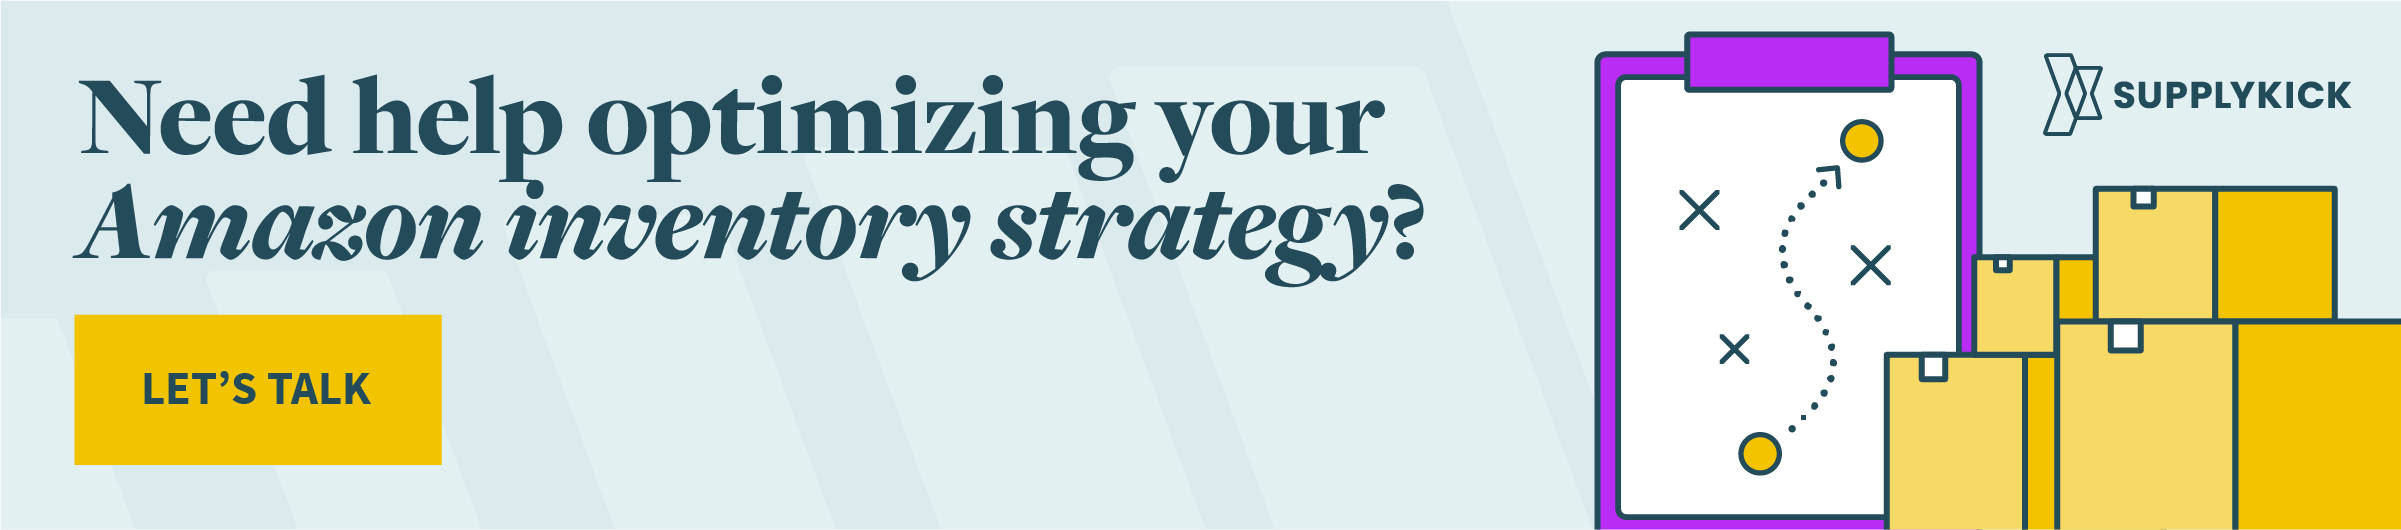 Need help optimizing your Amazon inventory strategy? Let's talk.